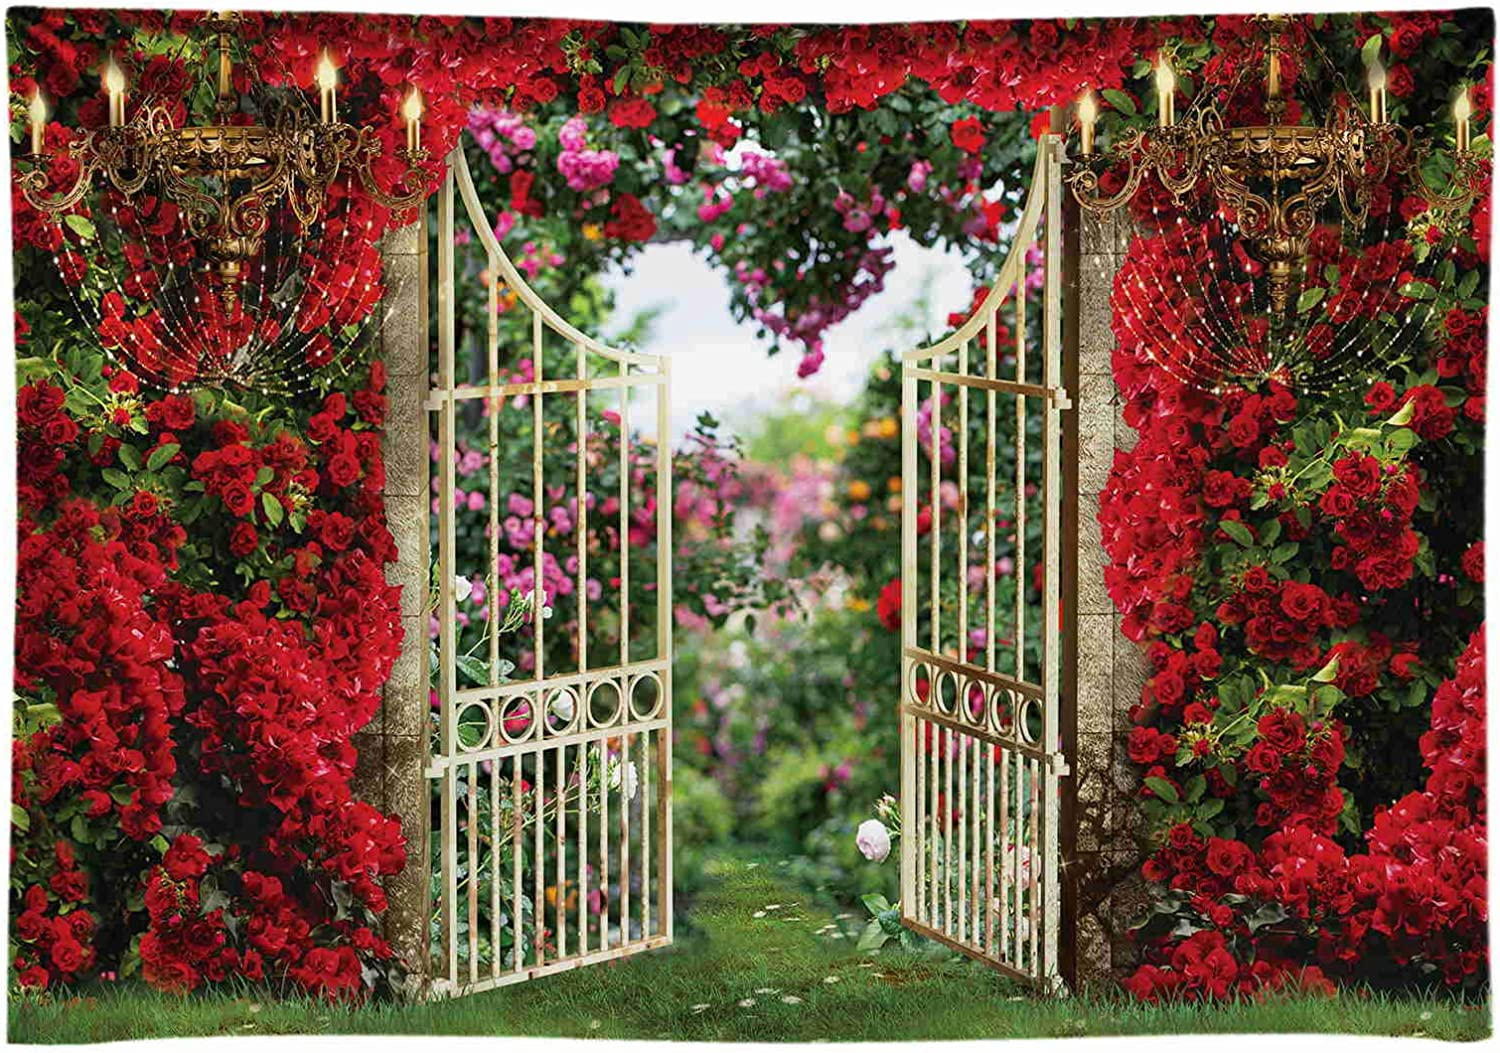 Funnytree 7x5FT Spring Garden Backdrop Red Rose Valentine's Day Flower Vintage Landscape Background Wedding Couple Bridal Shower Party Supplies Decor Banner Photography Prop Photobooth Soft Fabric